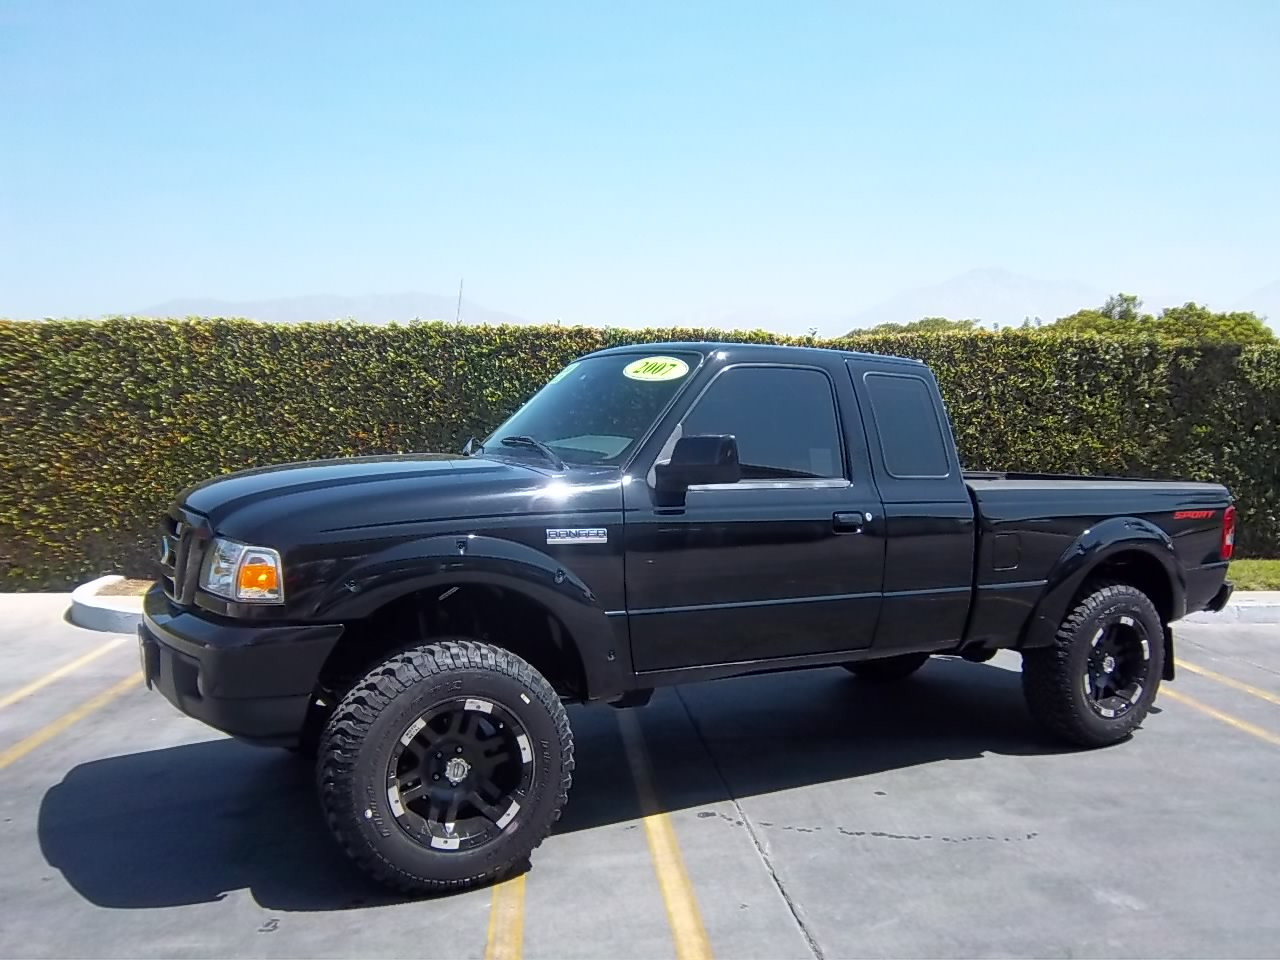 rate photo avg 4 votes picture of 2007 ford ranger xl supercab view